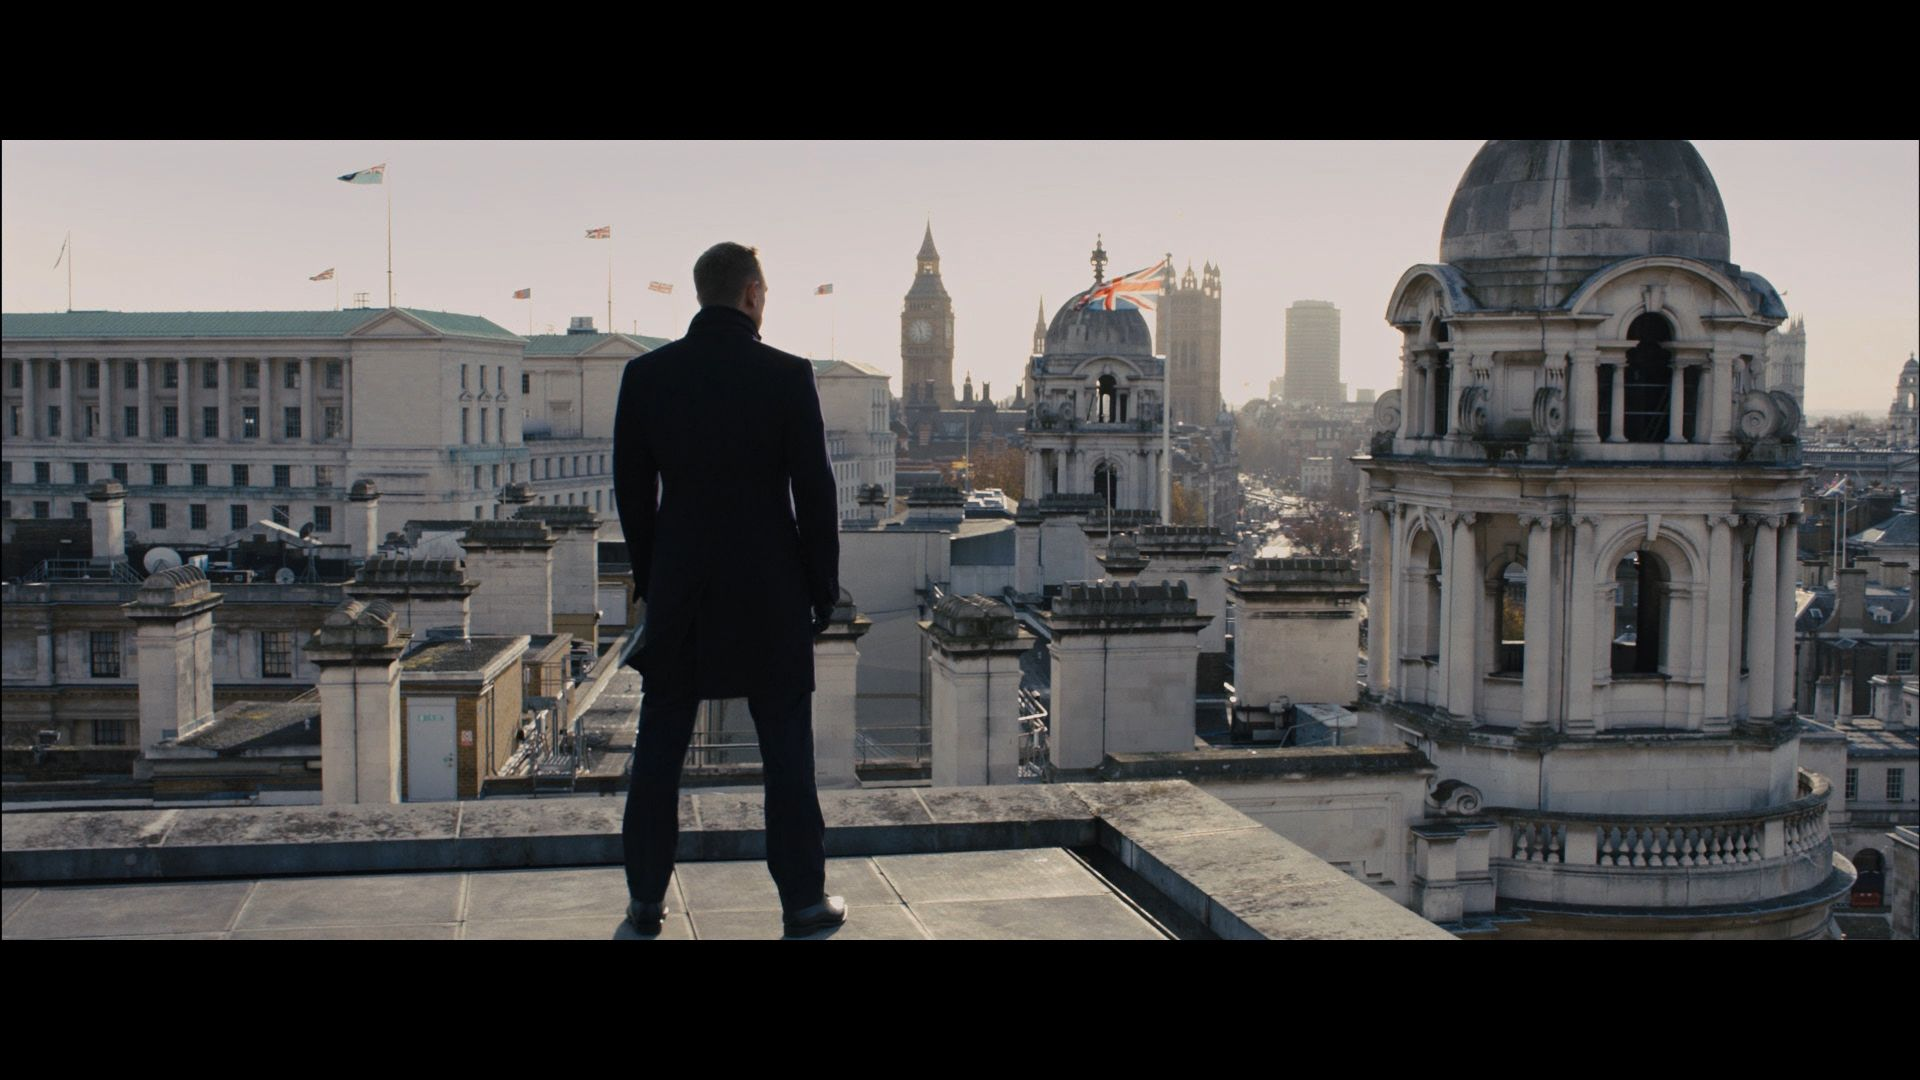 james-bond-skyfall-blu-ray-screenshot-0194412-i-1920.jpg (1920×1080)